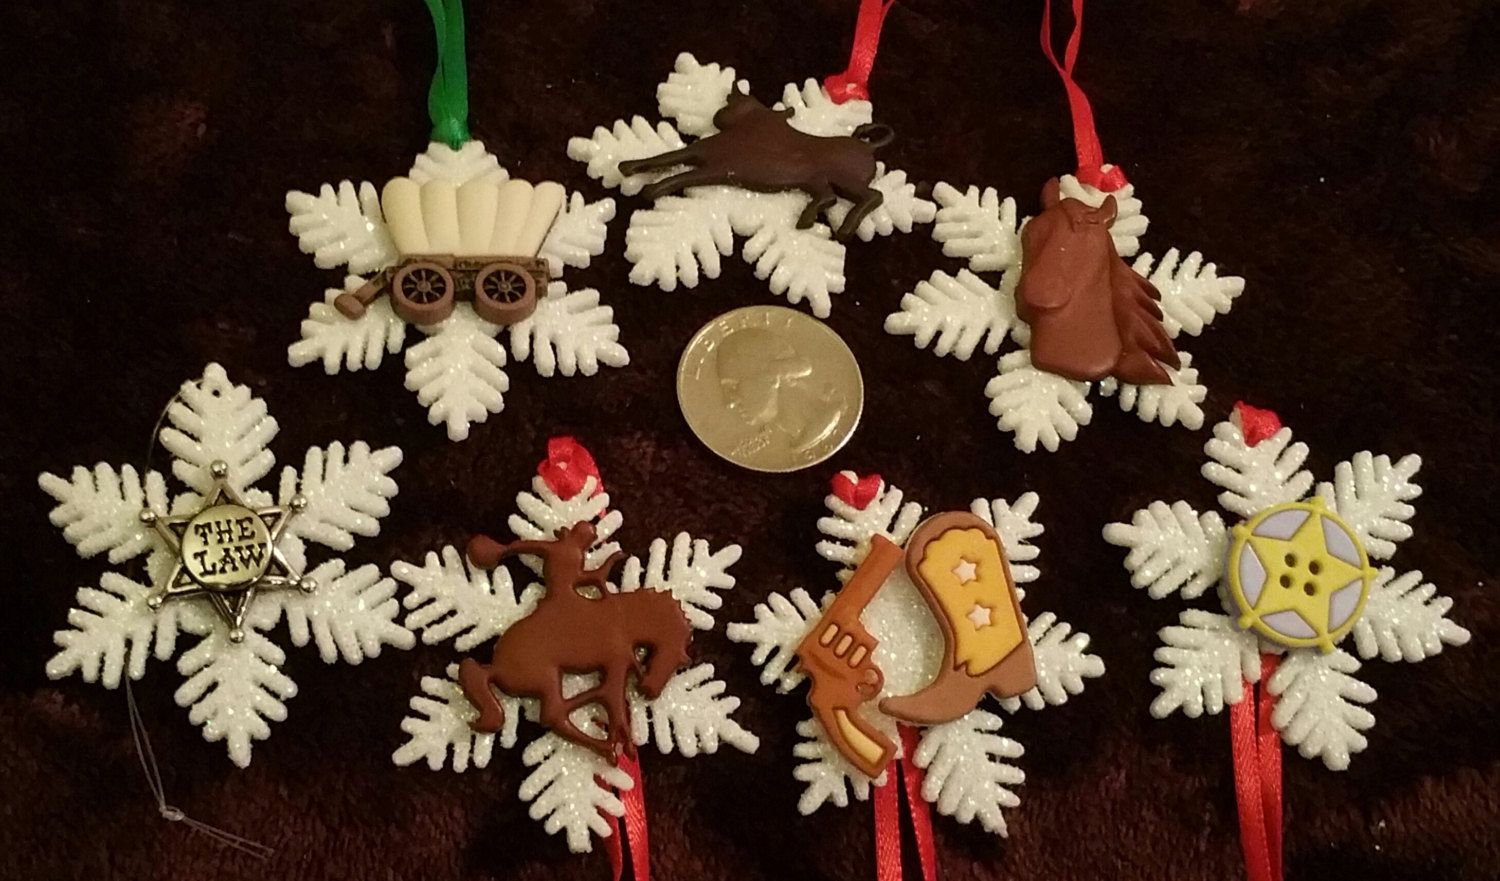 Christmas ornament sets for tree - 7 Piece Wild West Western Set Snowflake Character Christmas Ornament Set Decorations Gifts